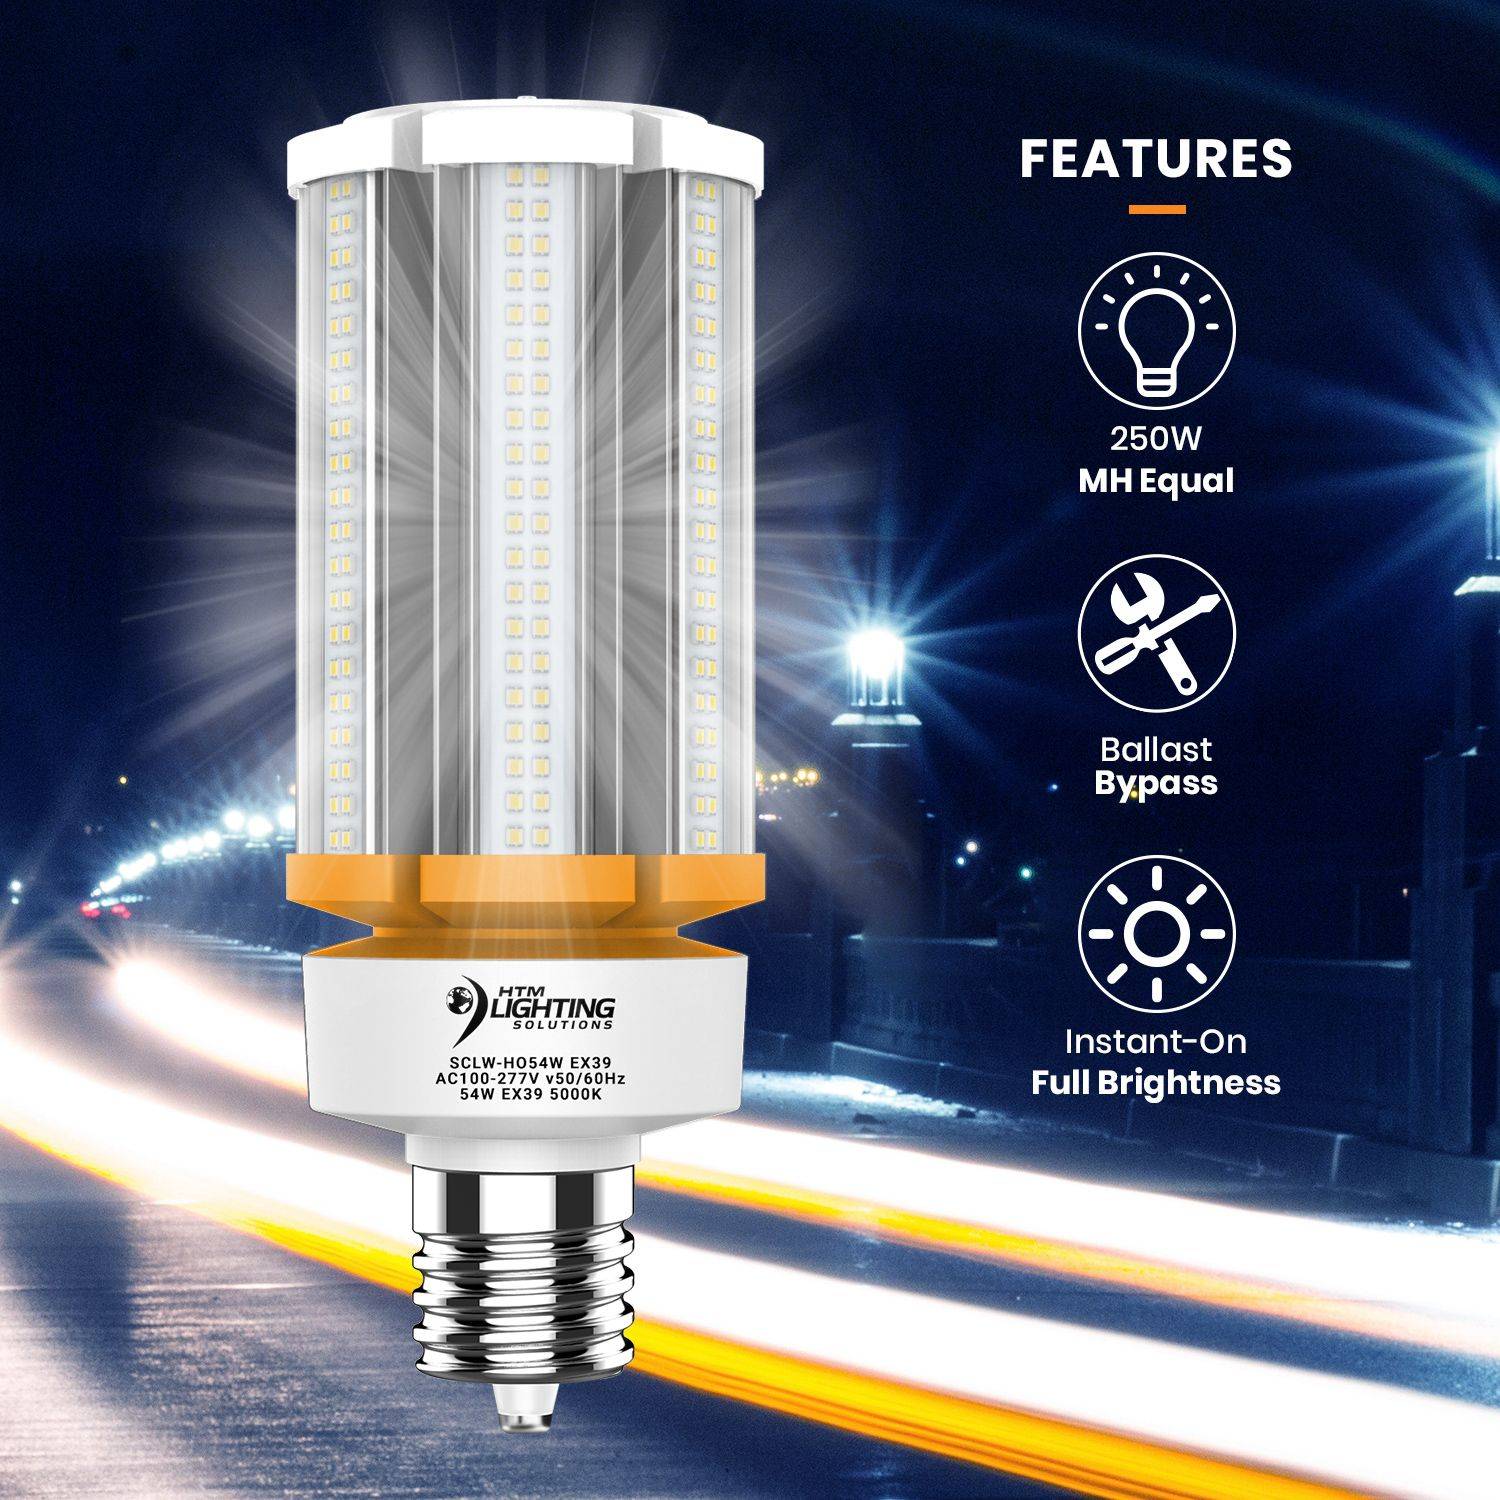 54w Led Corn Light Bulb 250w 300w Metal Halide Equal 8 100 Lumen 150lm W Ex39 Mogul Base Security Lights Light Architecture Bulb